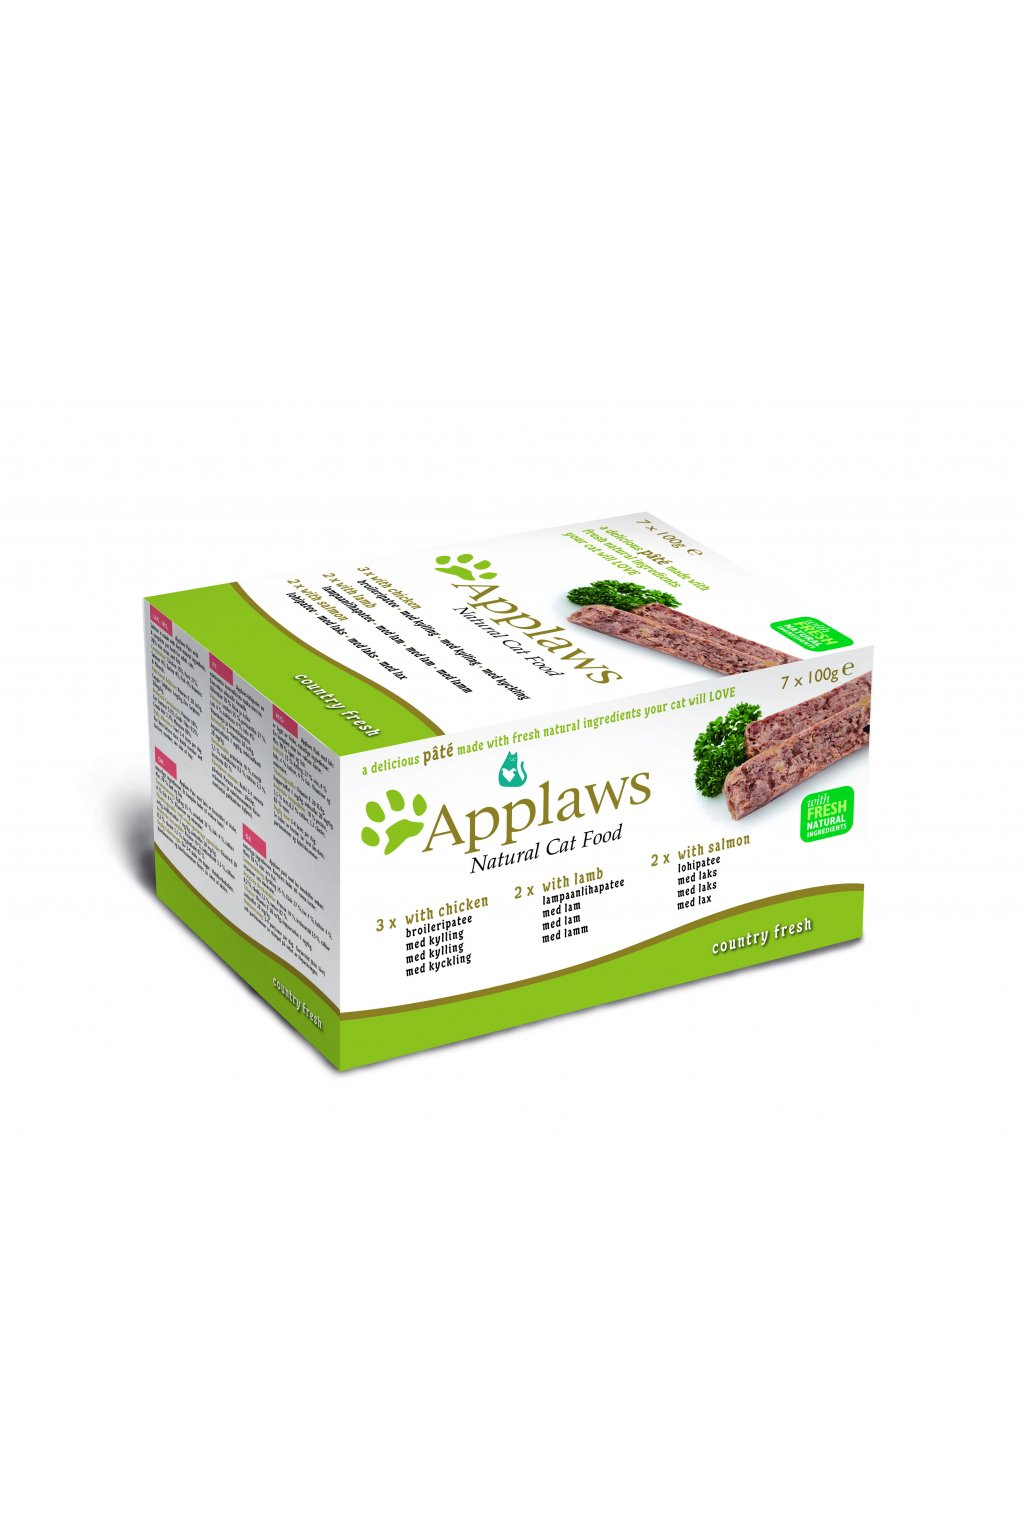 6007 Applaws Pate CAT 7x100g MP Country